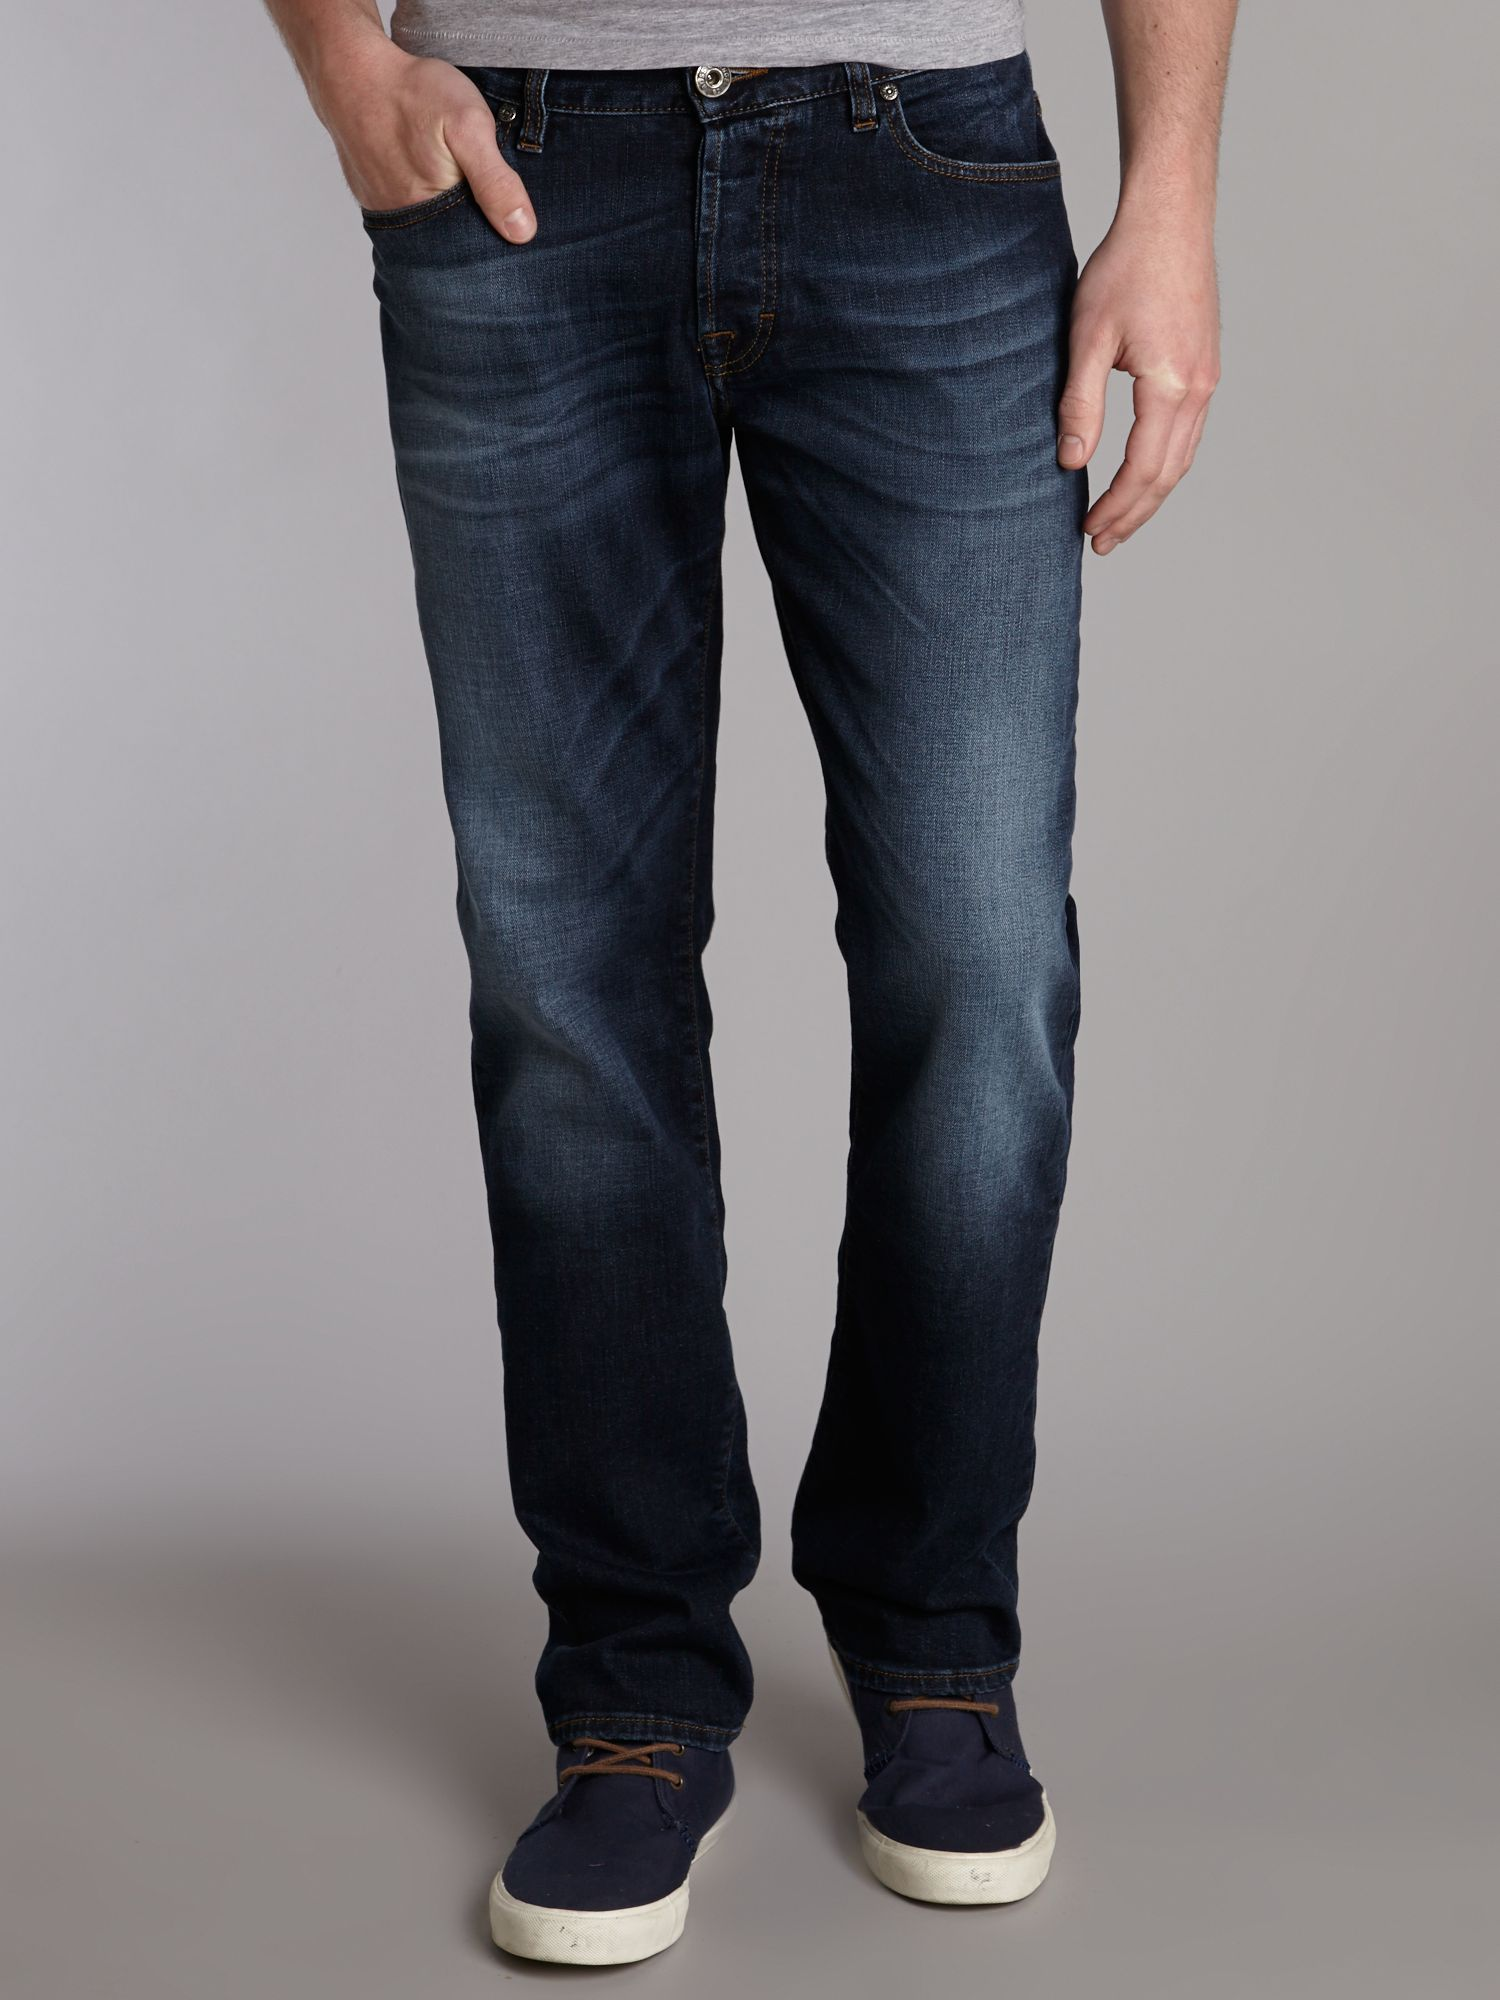 Orange 25 heavy wash straight fit jeans